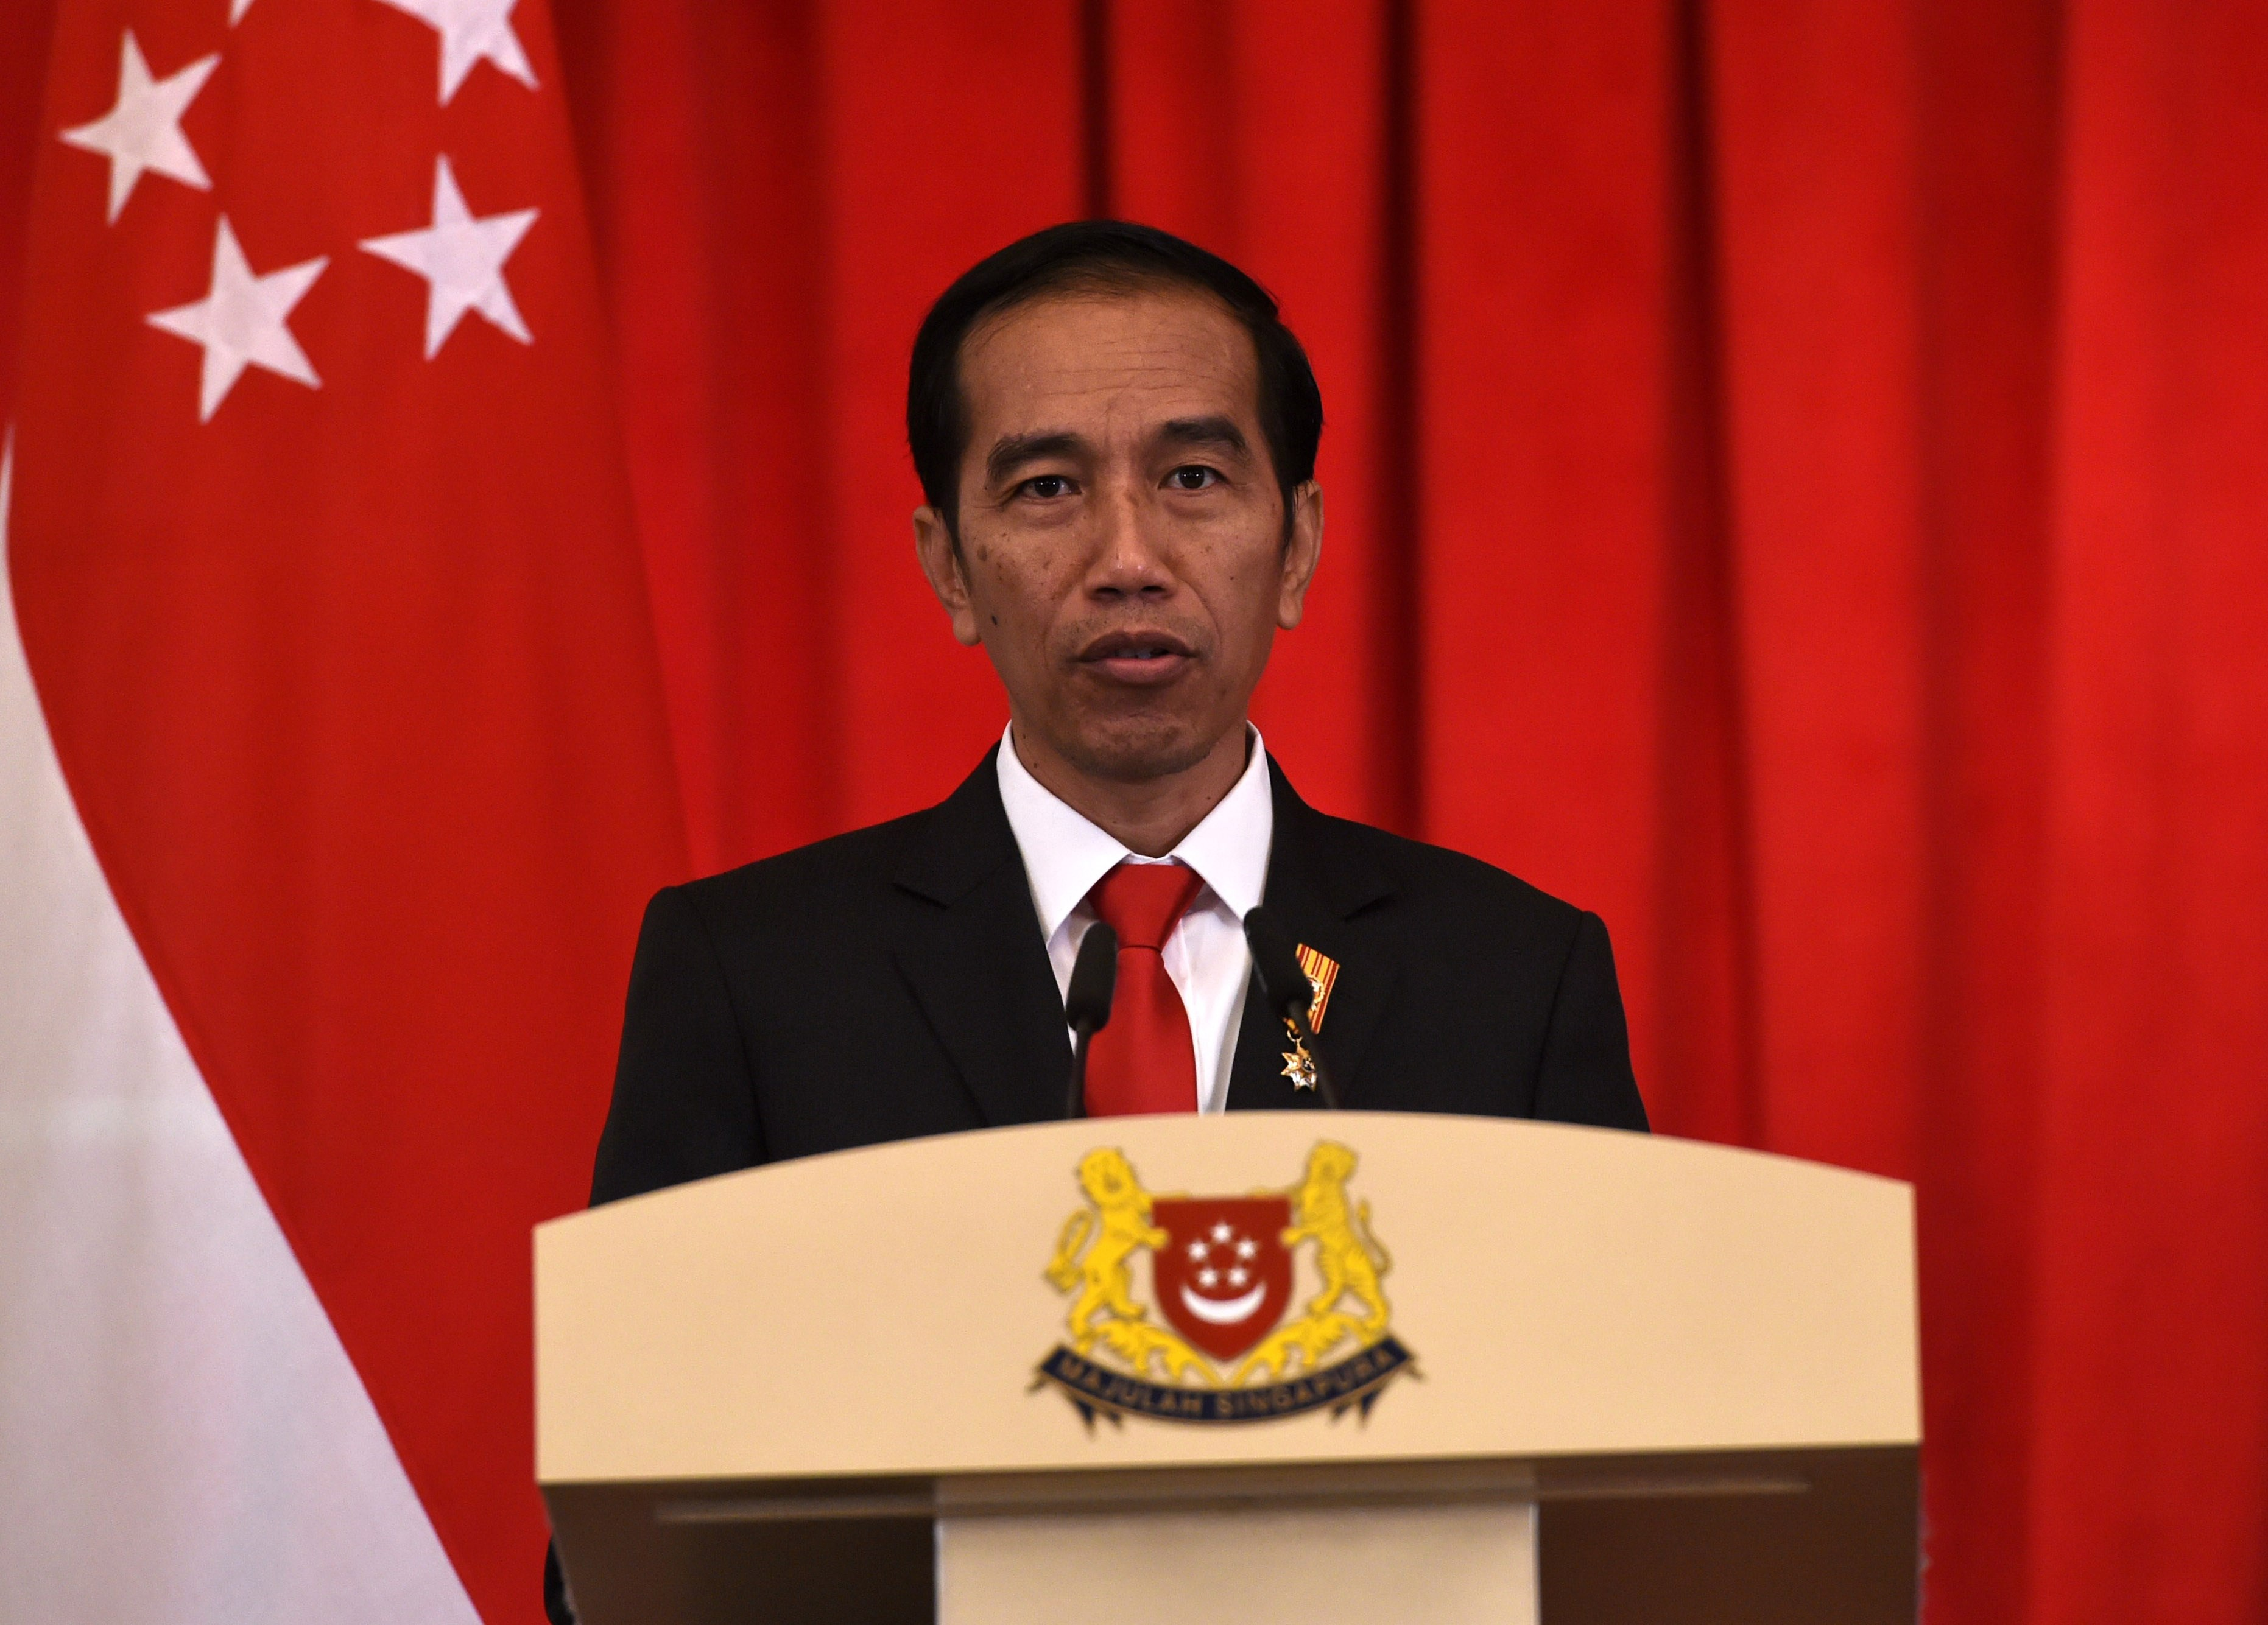 Indonesia's President Joko Widodo speaks at a joint press conference with his Singaporean counterpart after witnessing a signing ceremony for a memorandum of understanding agreement between both countries in Singapore on July 28, 2015